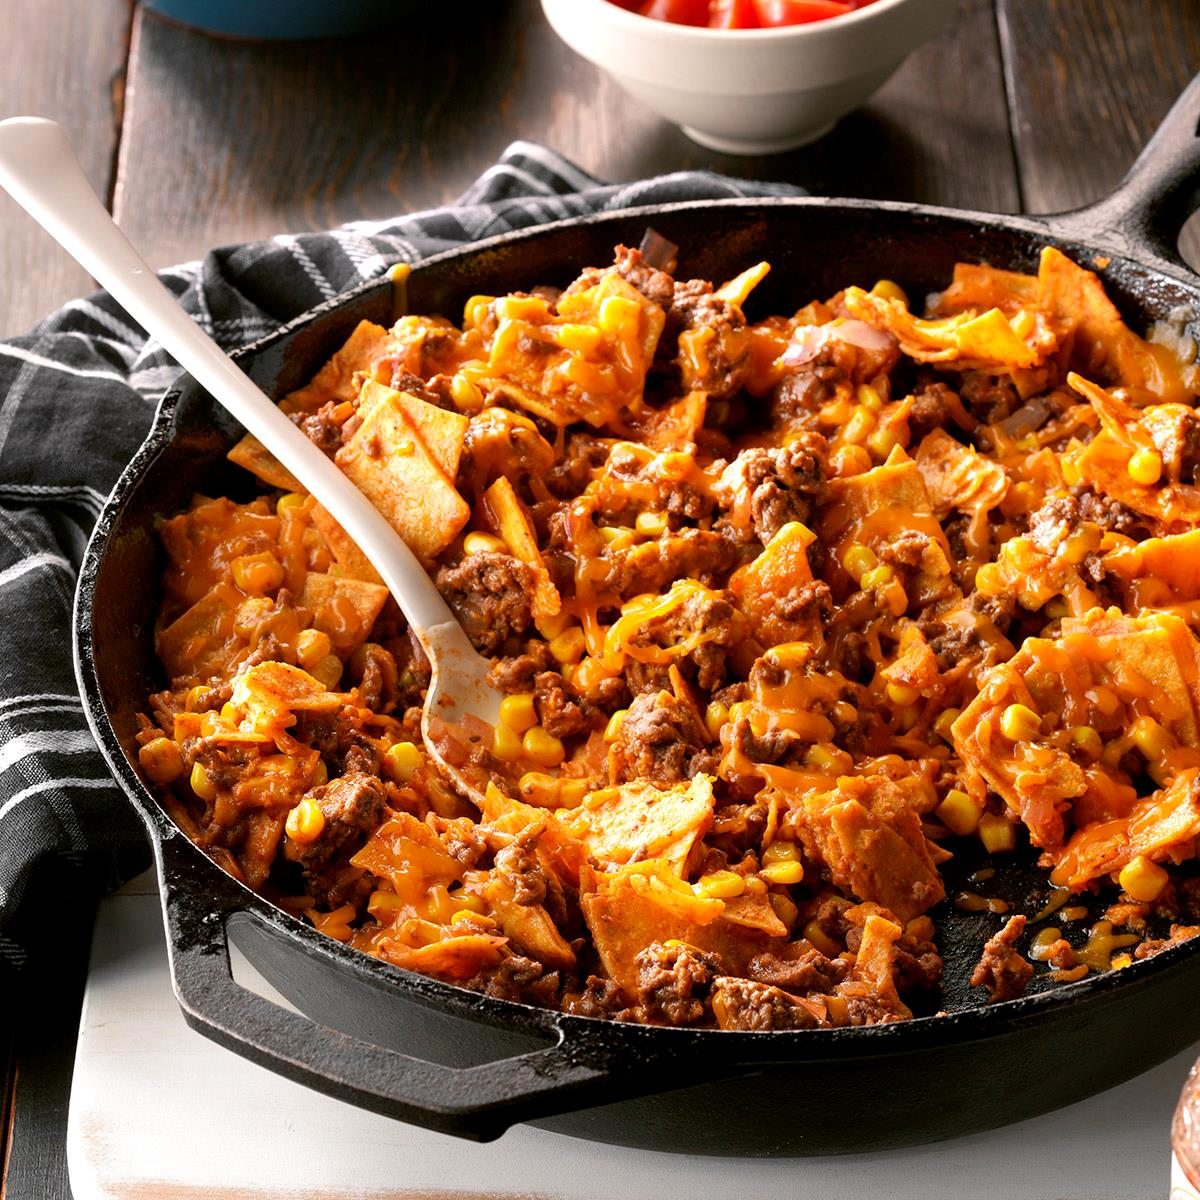 Easy Dinner Ideas With Hamburger: Easy Beef Taco Skillet Recipe